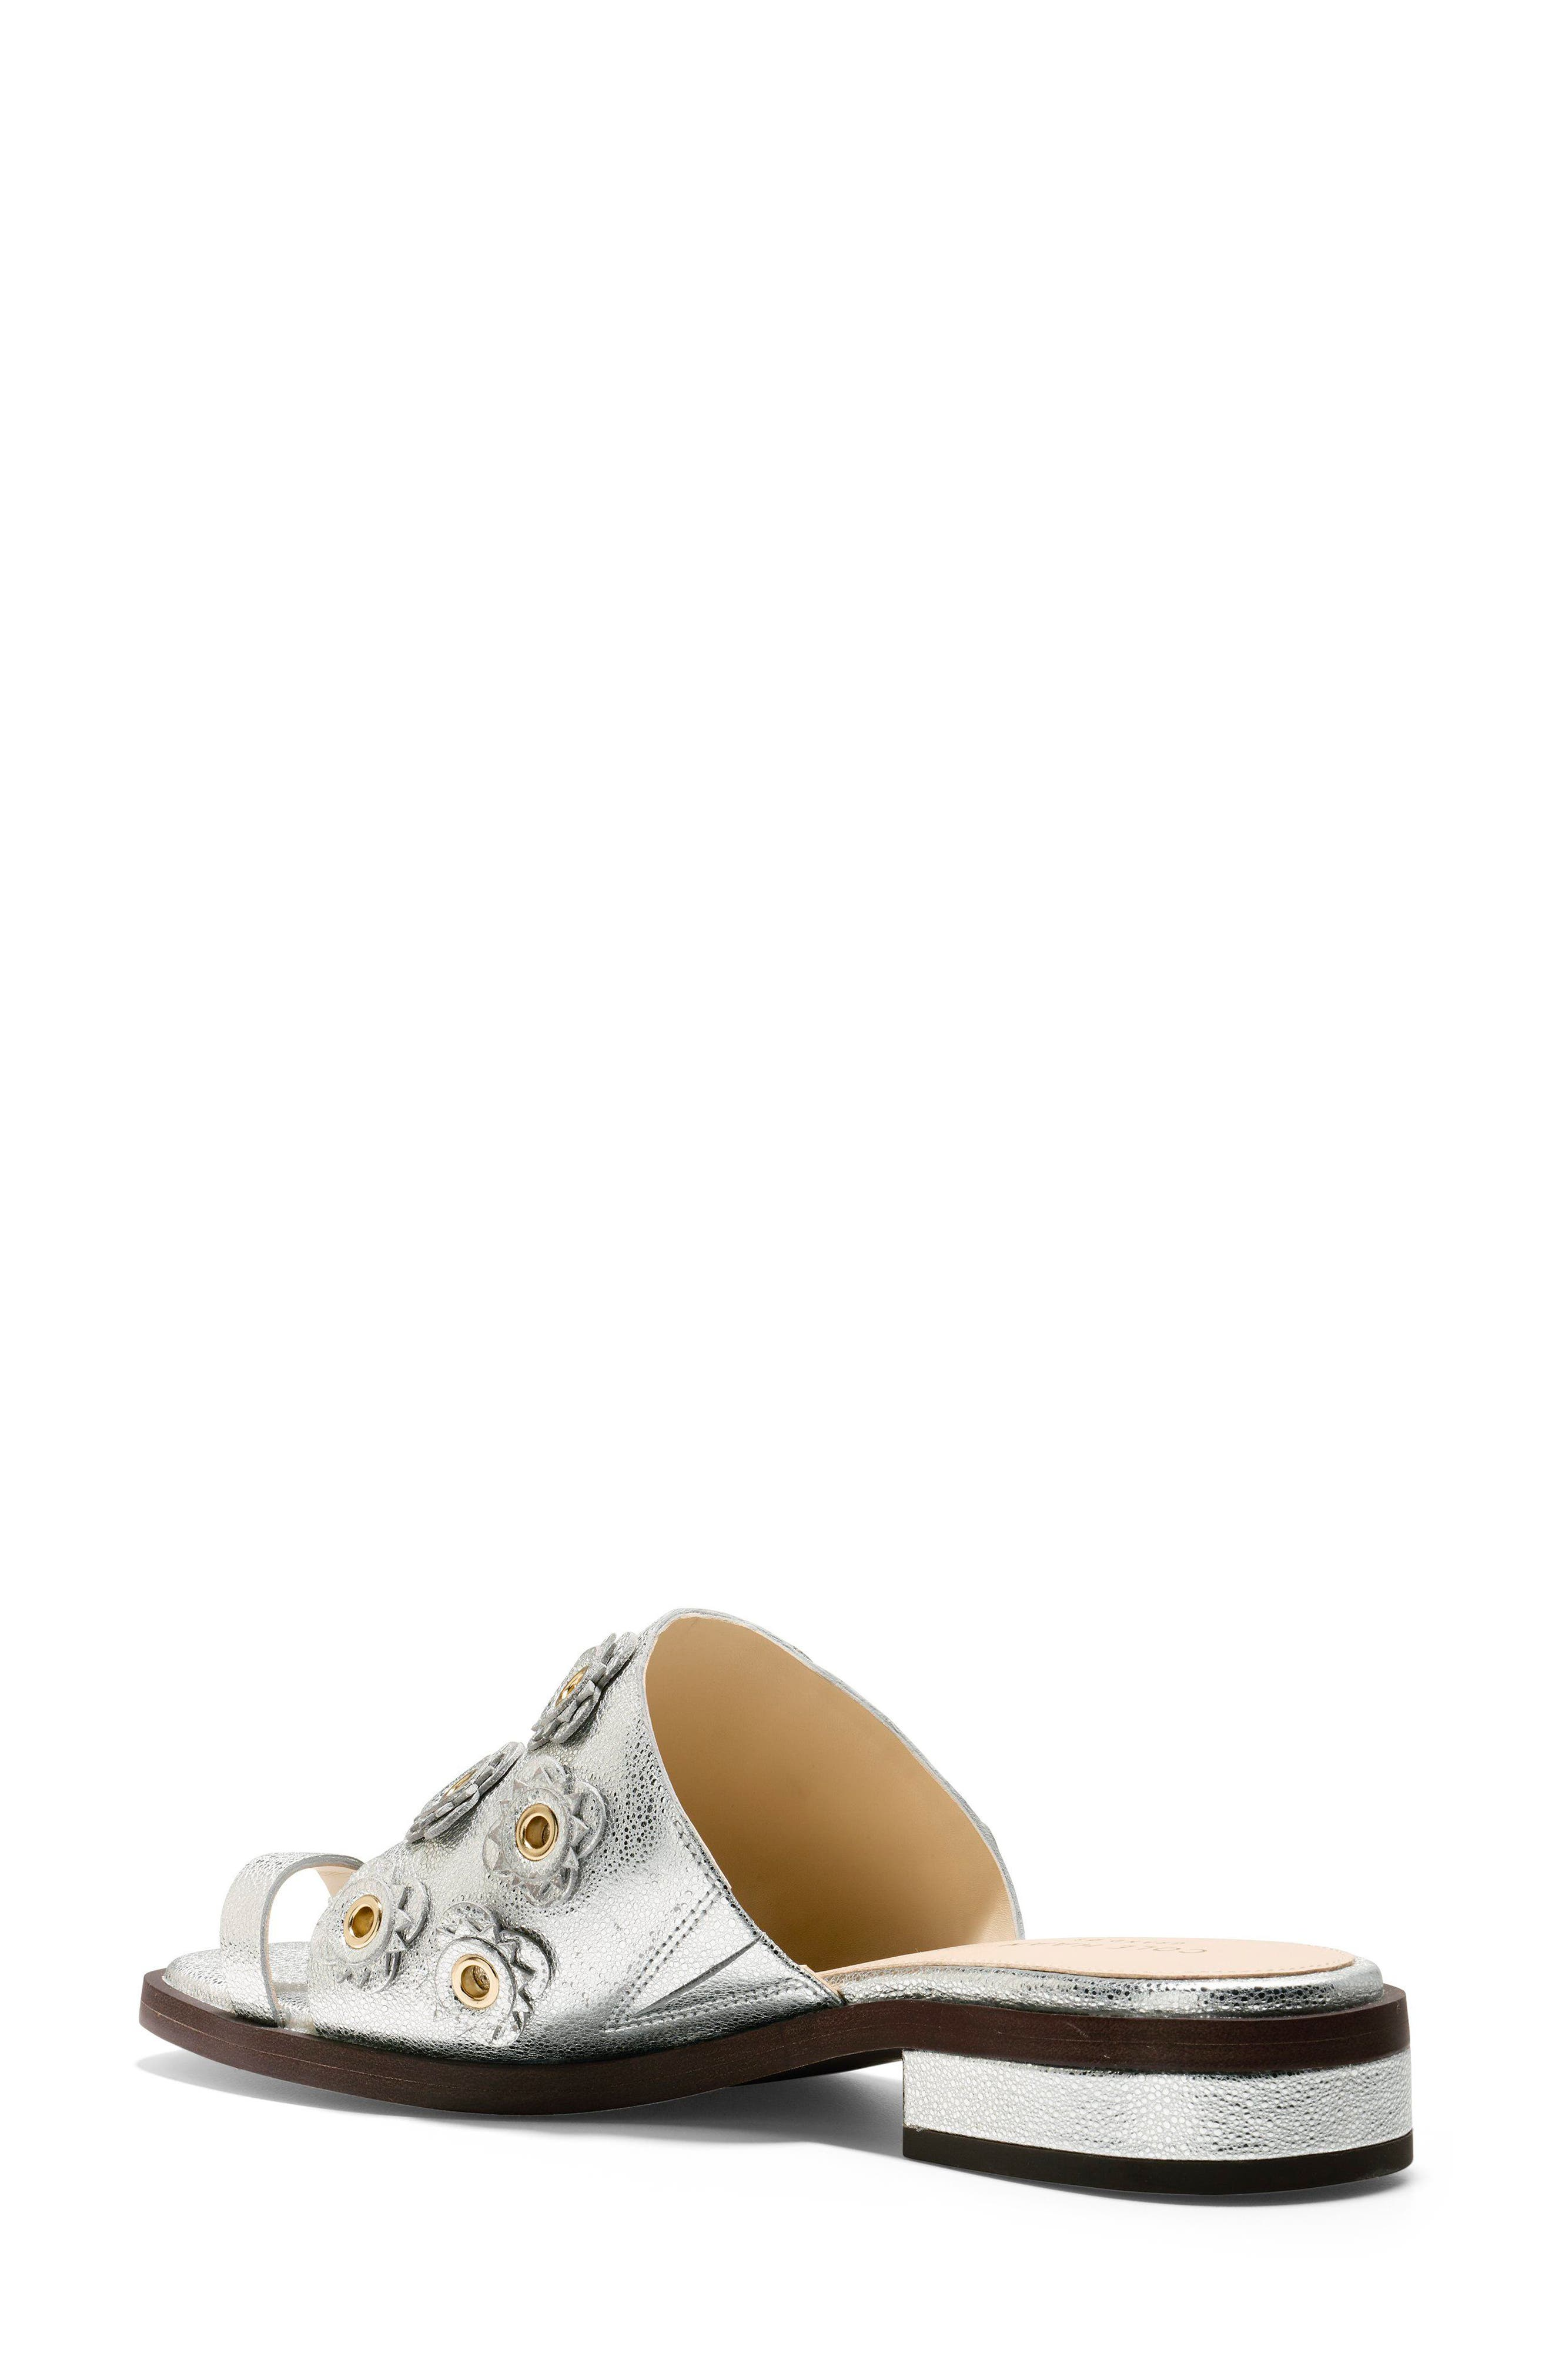 Carly Floral Sandal,                             Alternate thumbnail 2, color,                             SILVER METALLIC LEATHER